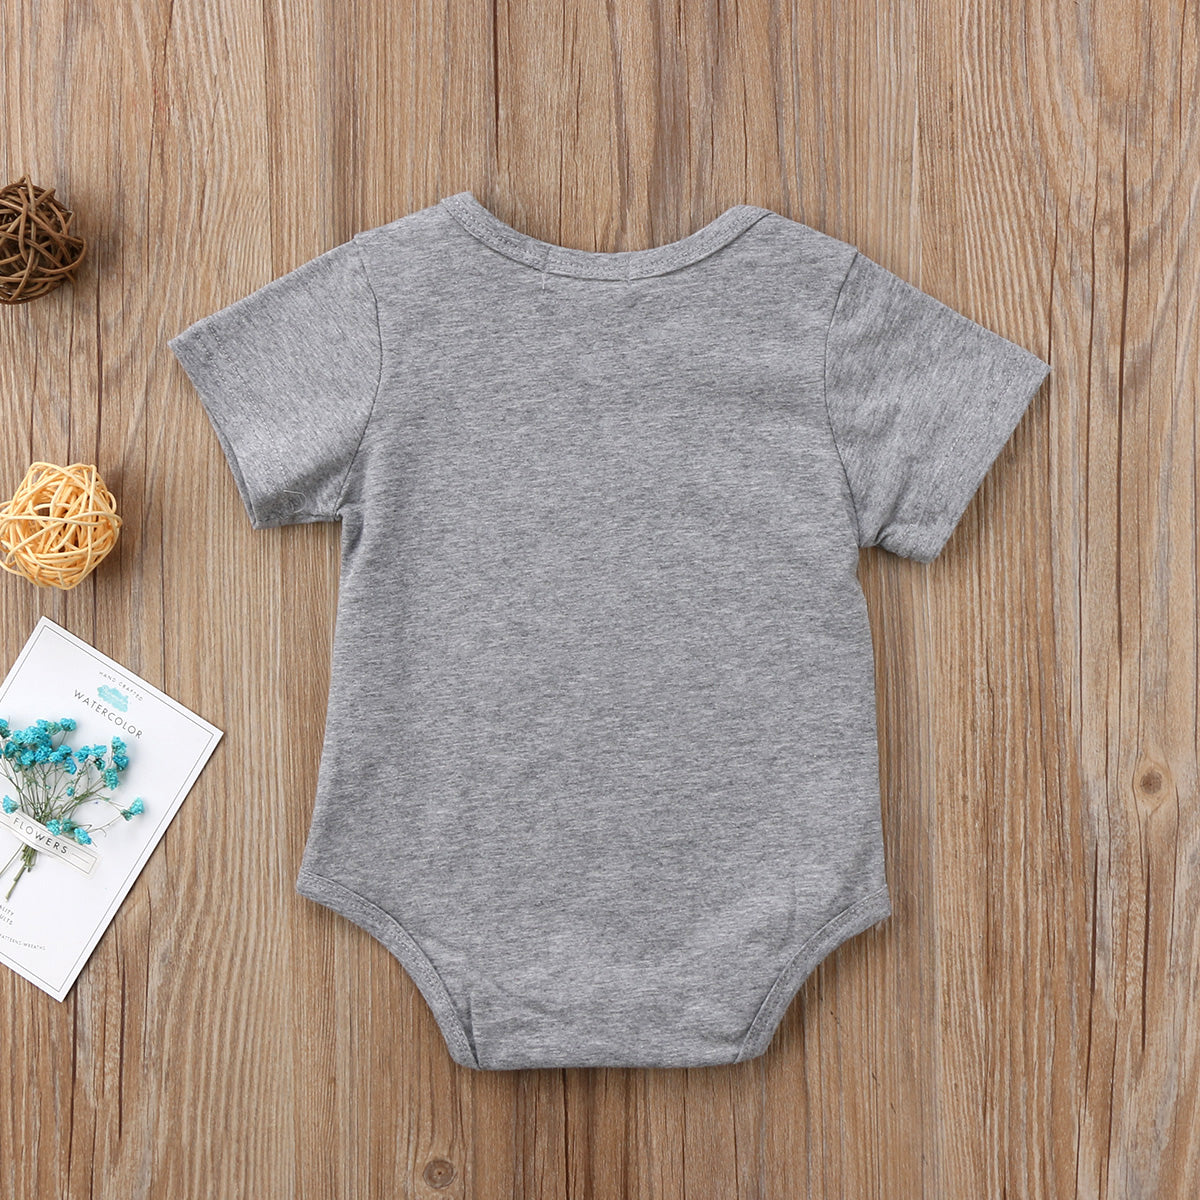 Gray Coloured Short Sleeved Crazy Jumpsuit Cotton Outfit for 0-24M Newborn